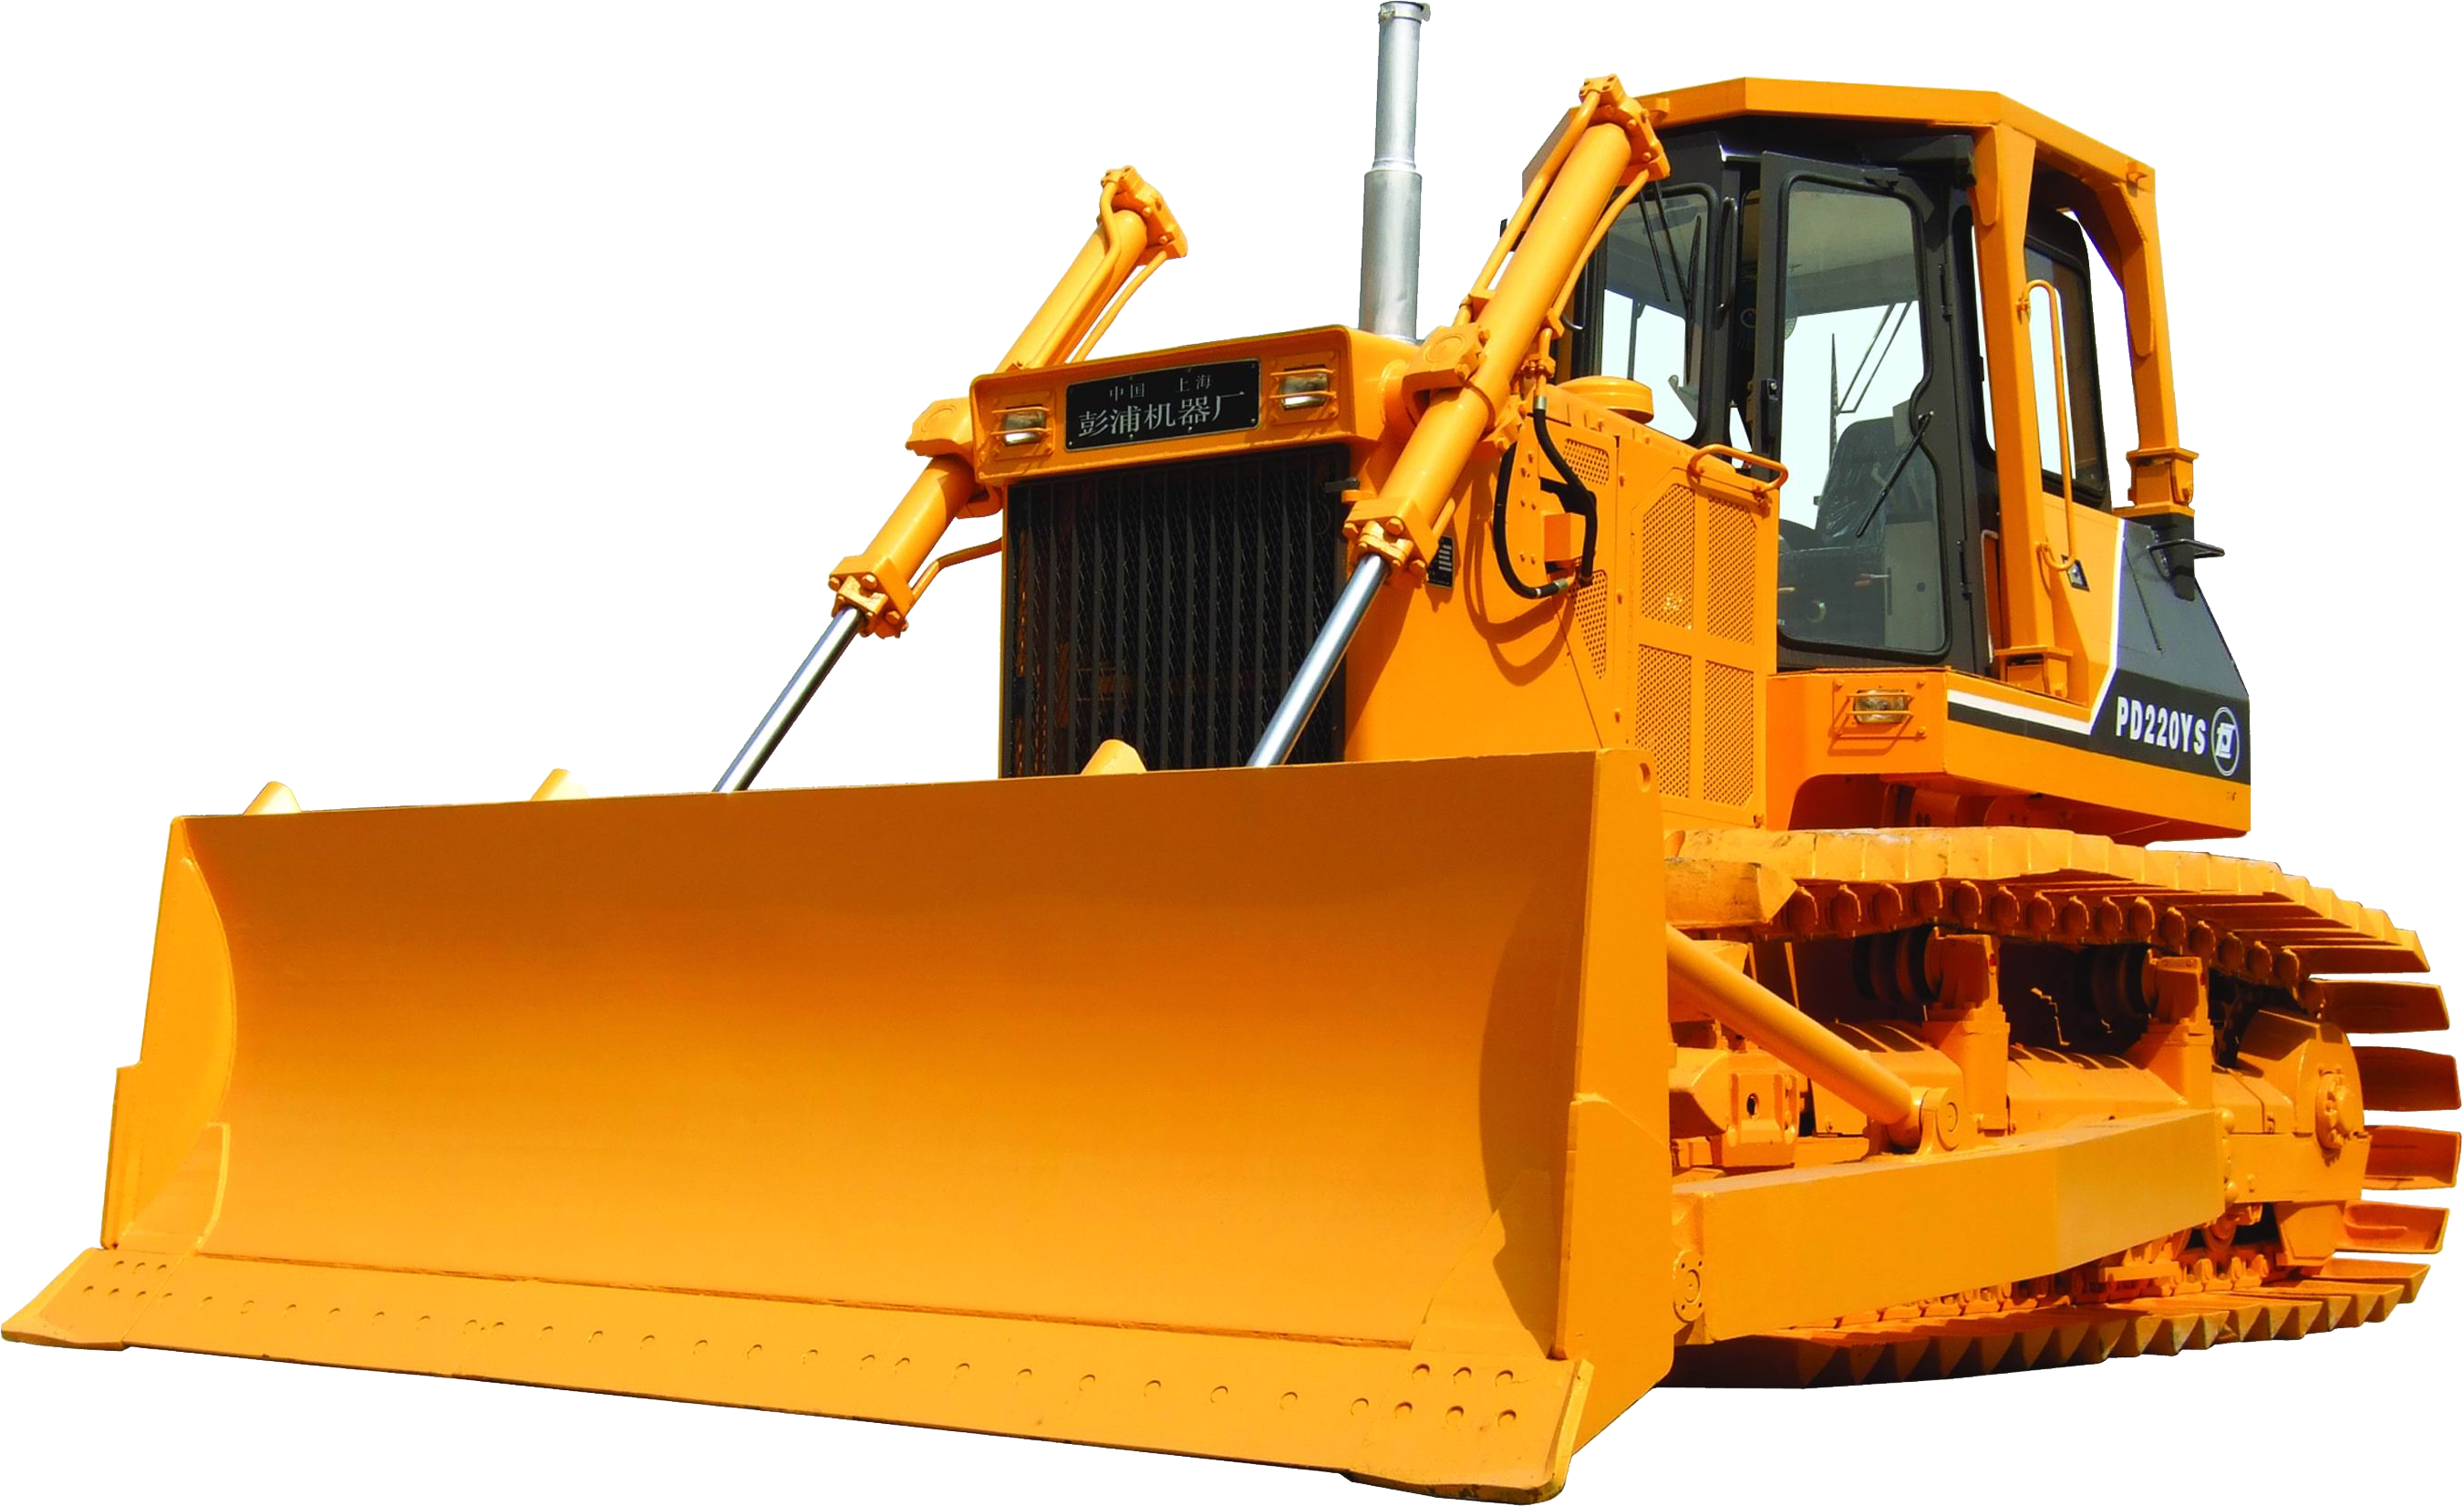 Bulldozer Background PNG   Picpng 2702x1651